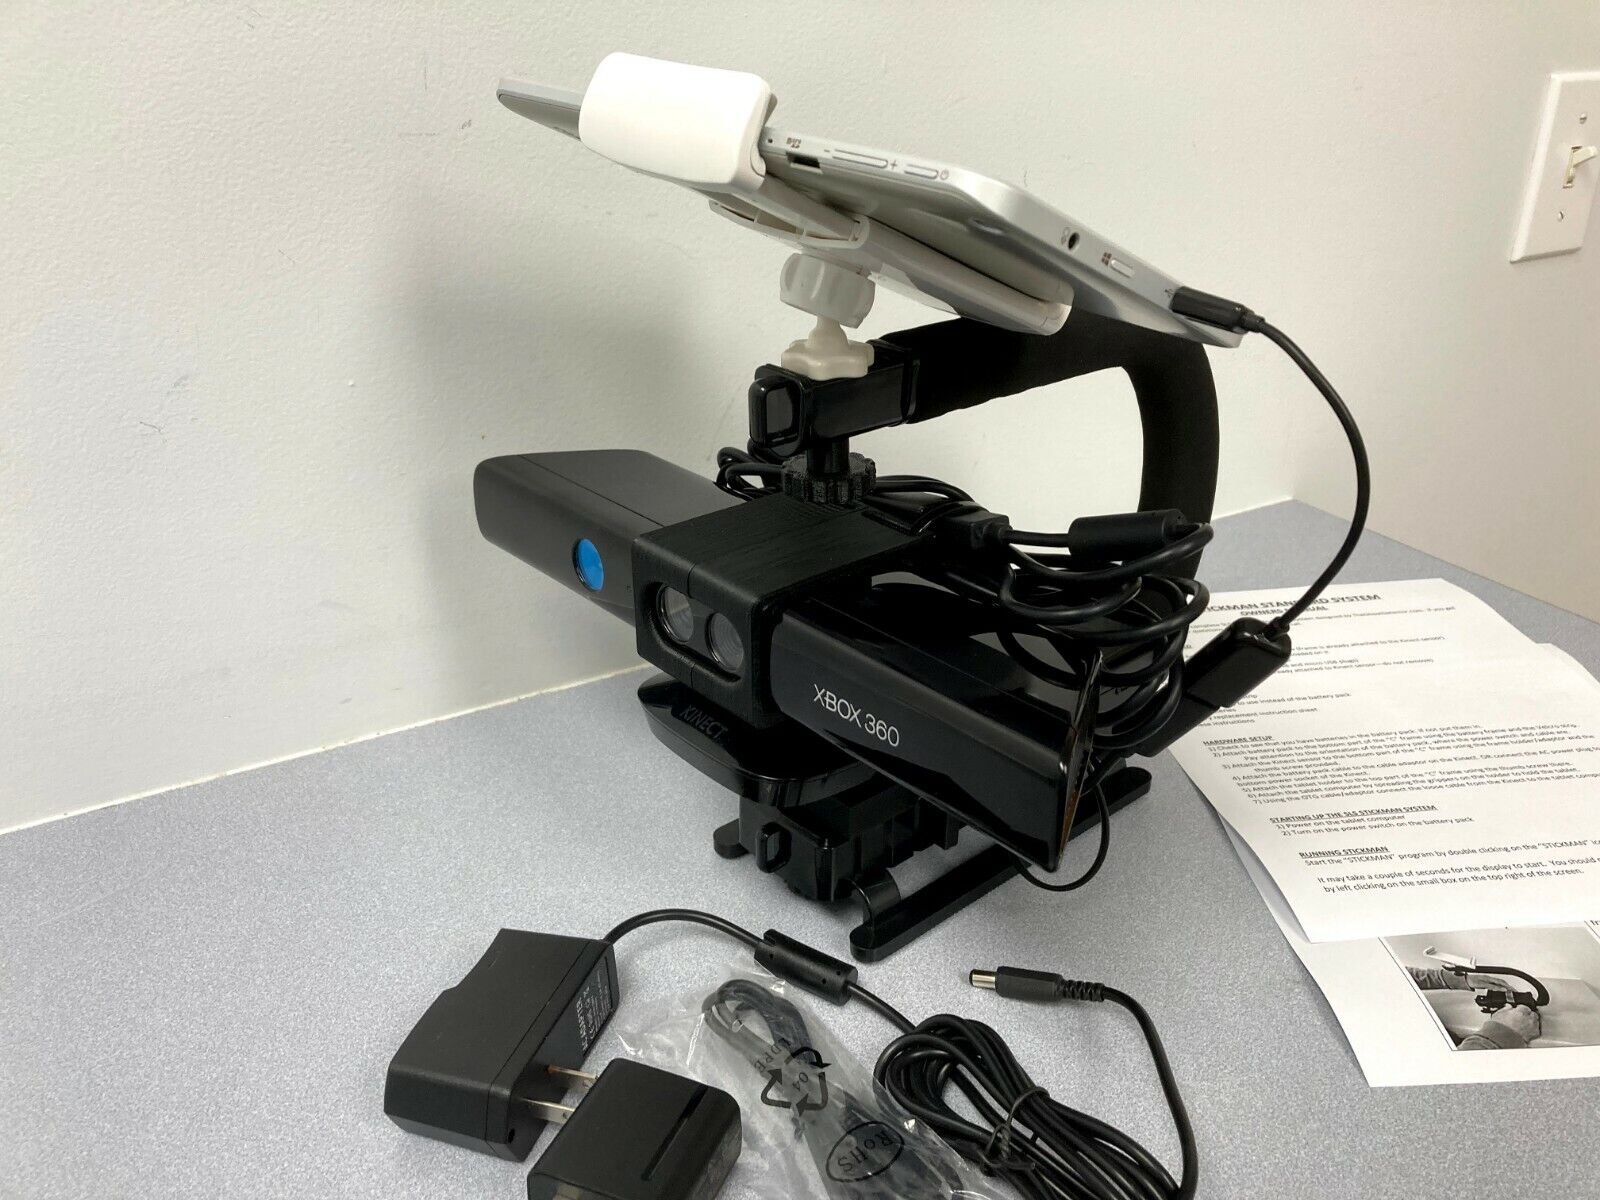 SLS Stickman System Using An XBOX 360 Kinect Sensor For Ghost Hunting Complete - $249.00